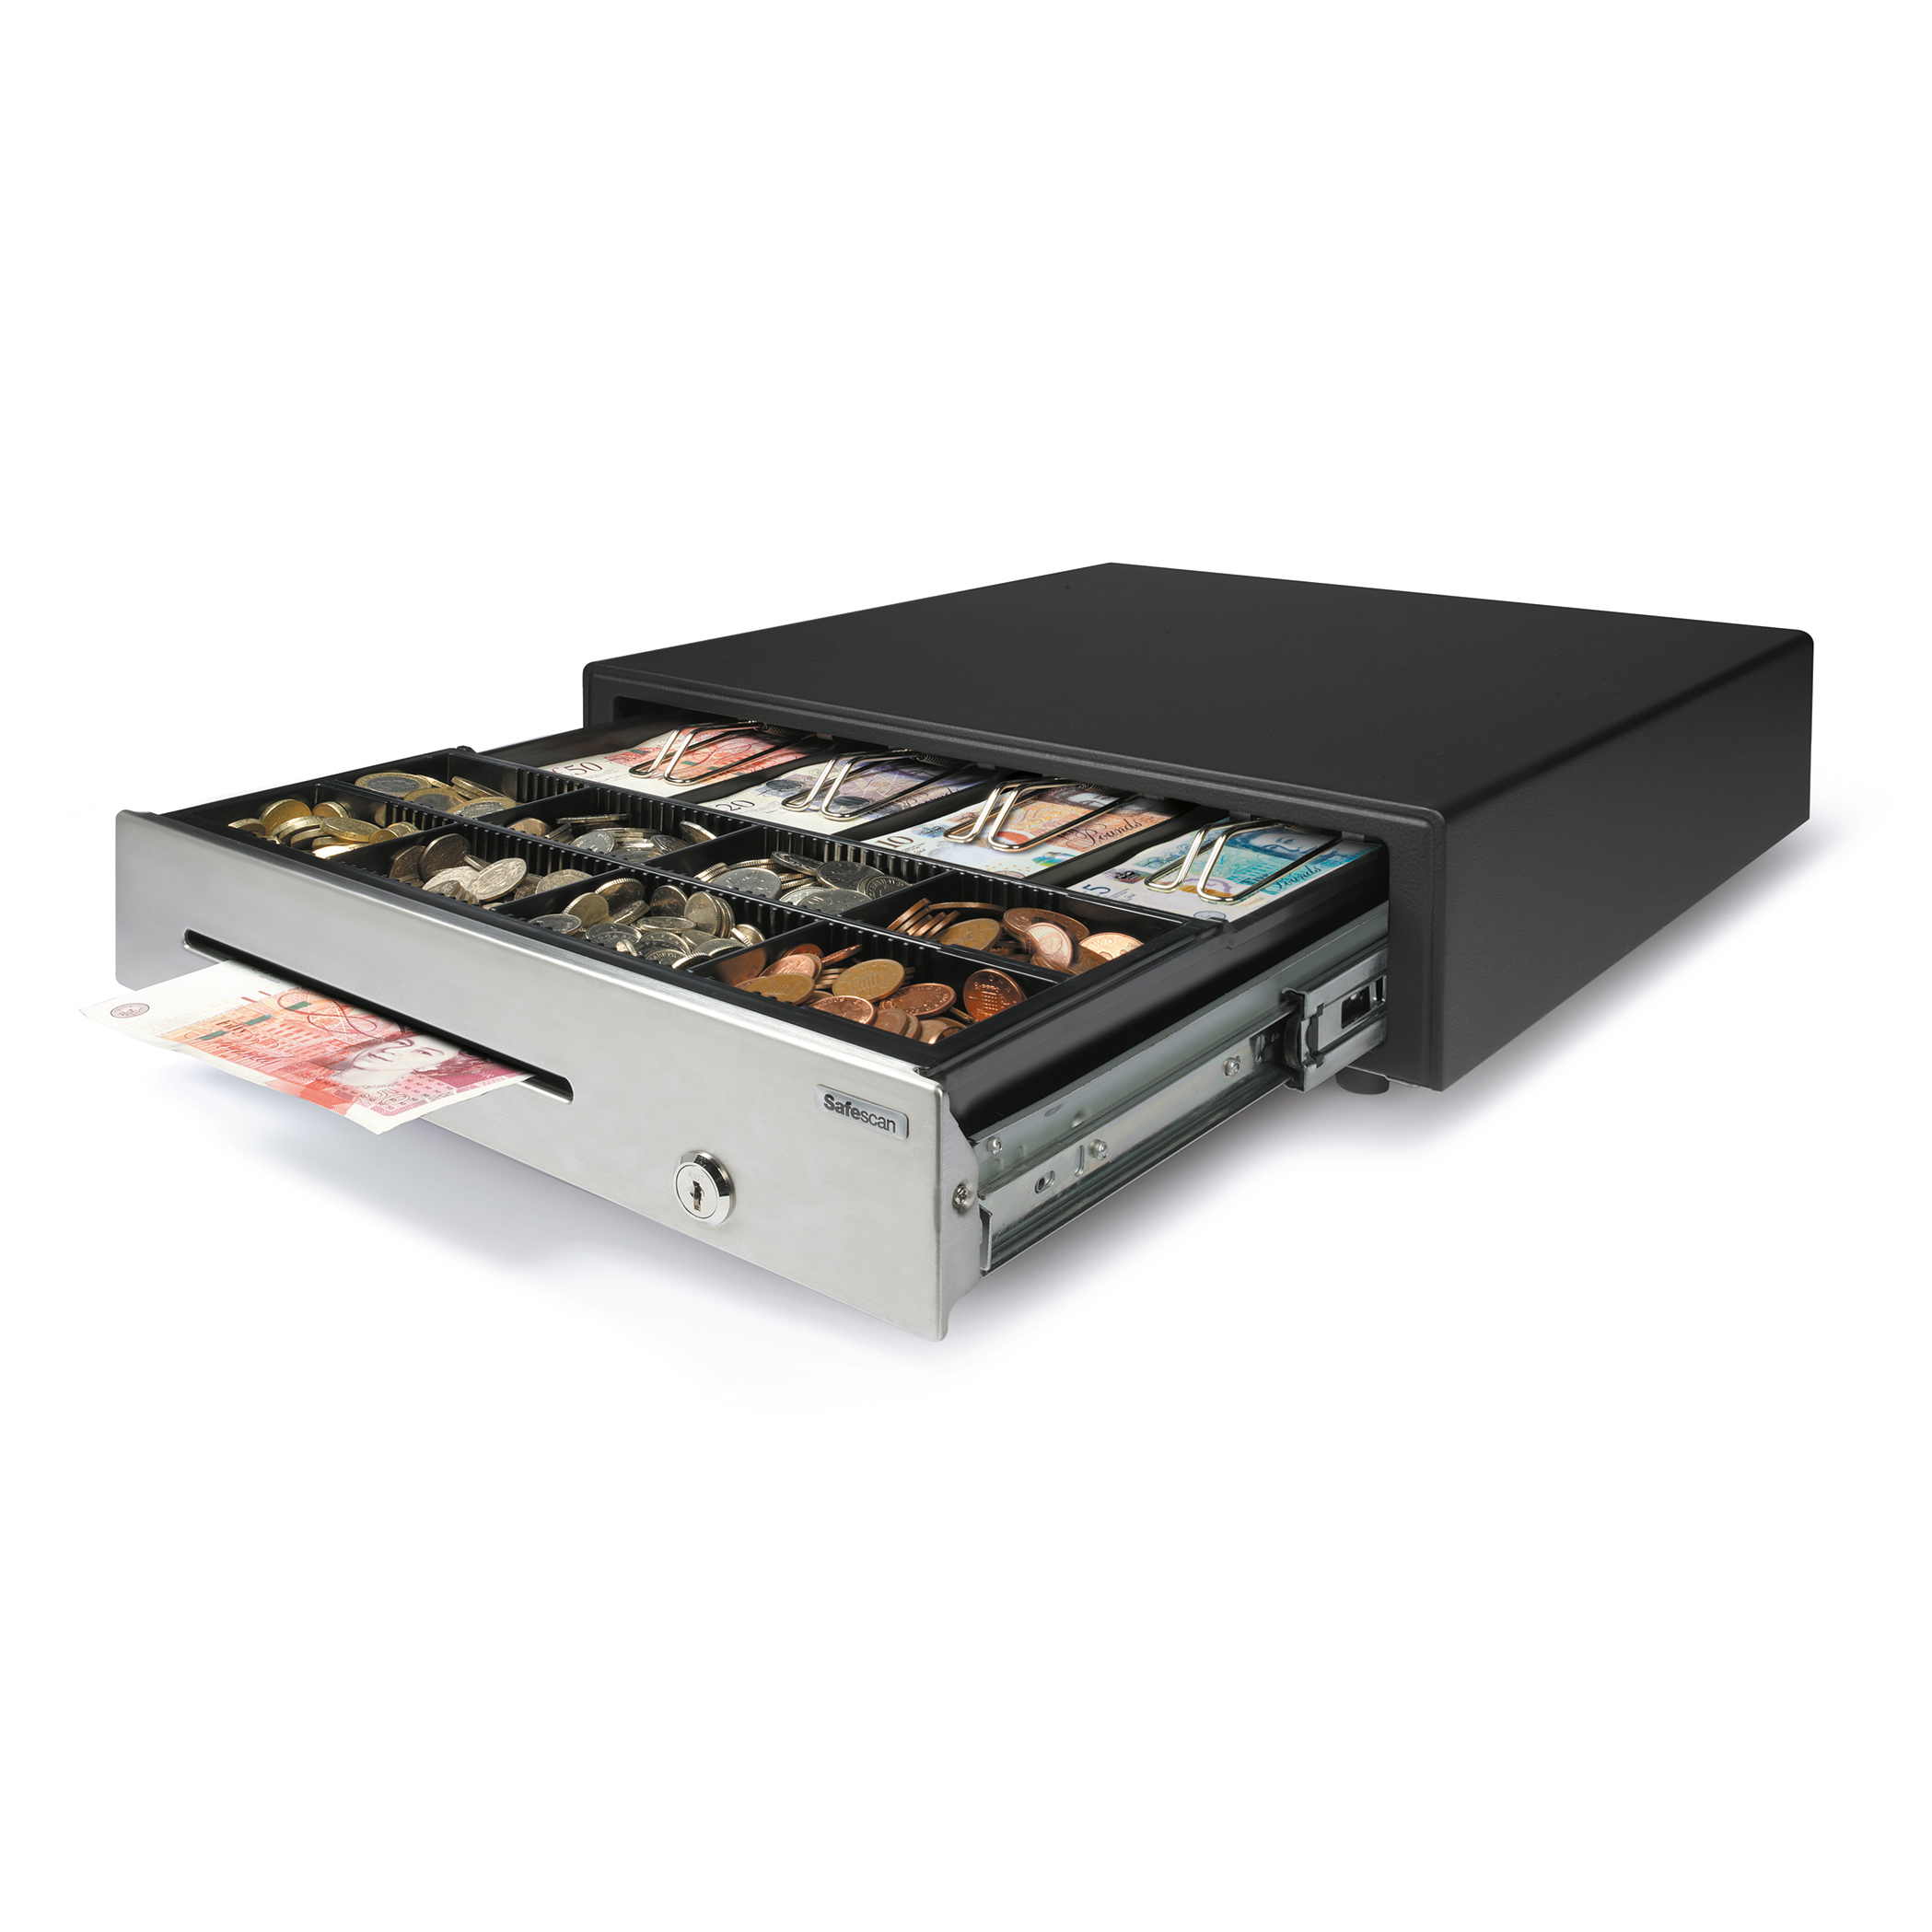 Cash Safescan HD-4141S Heavy-duty Cash Drawer L410xW415xH115mm Black/Silver Ref 132-0426